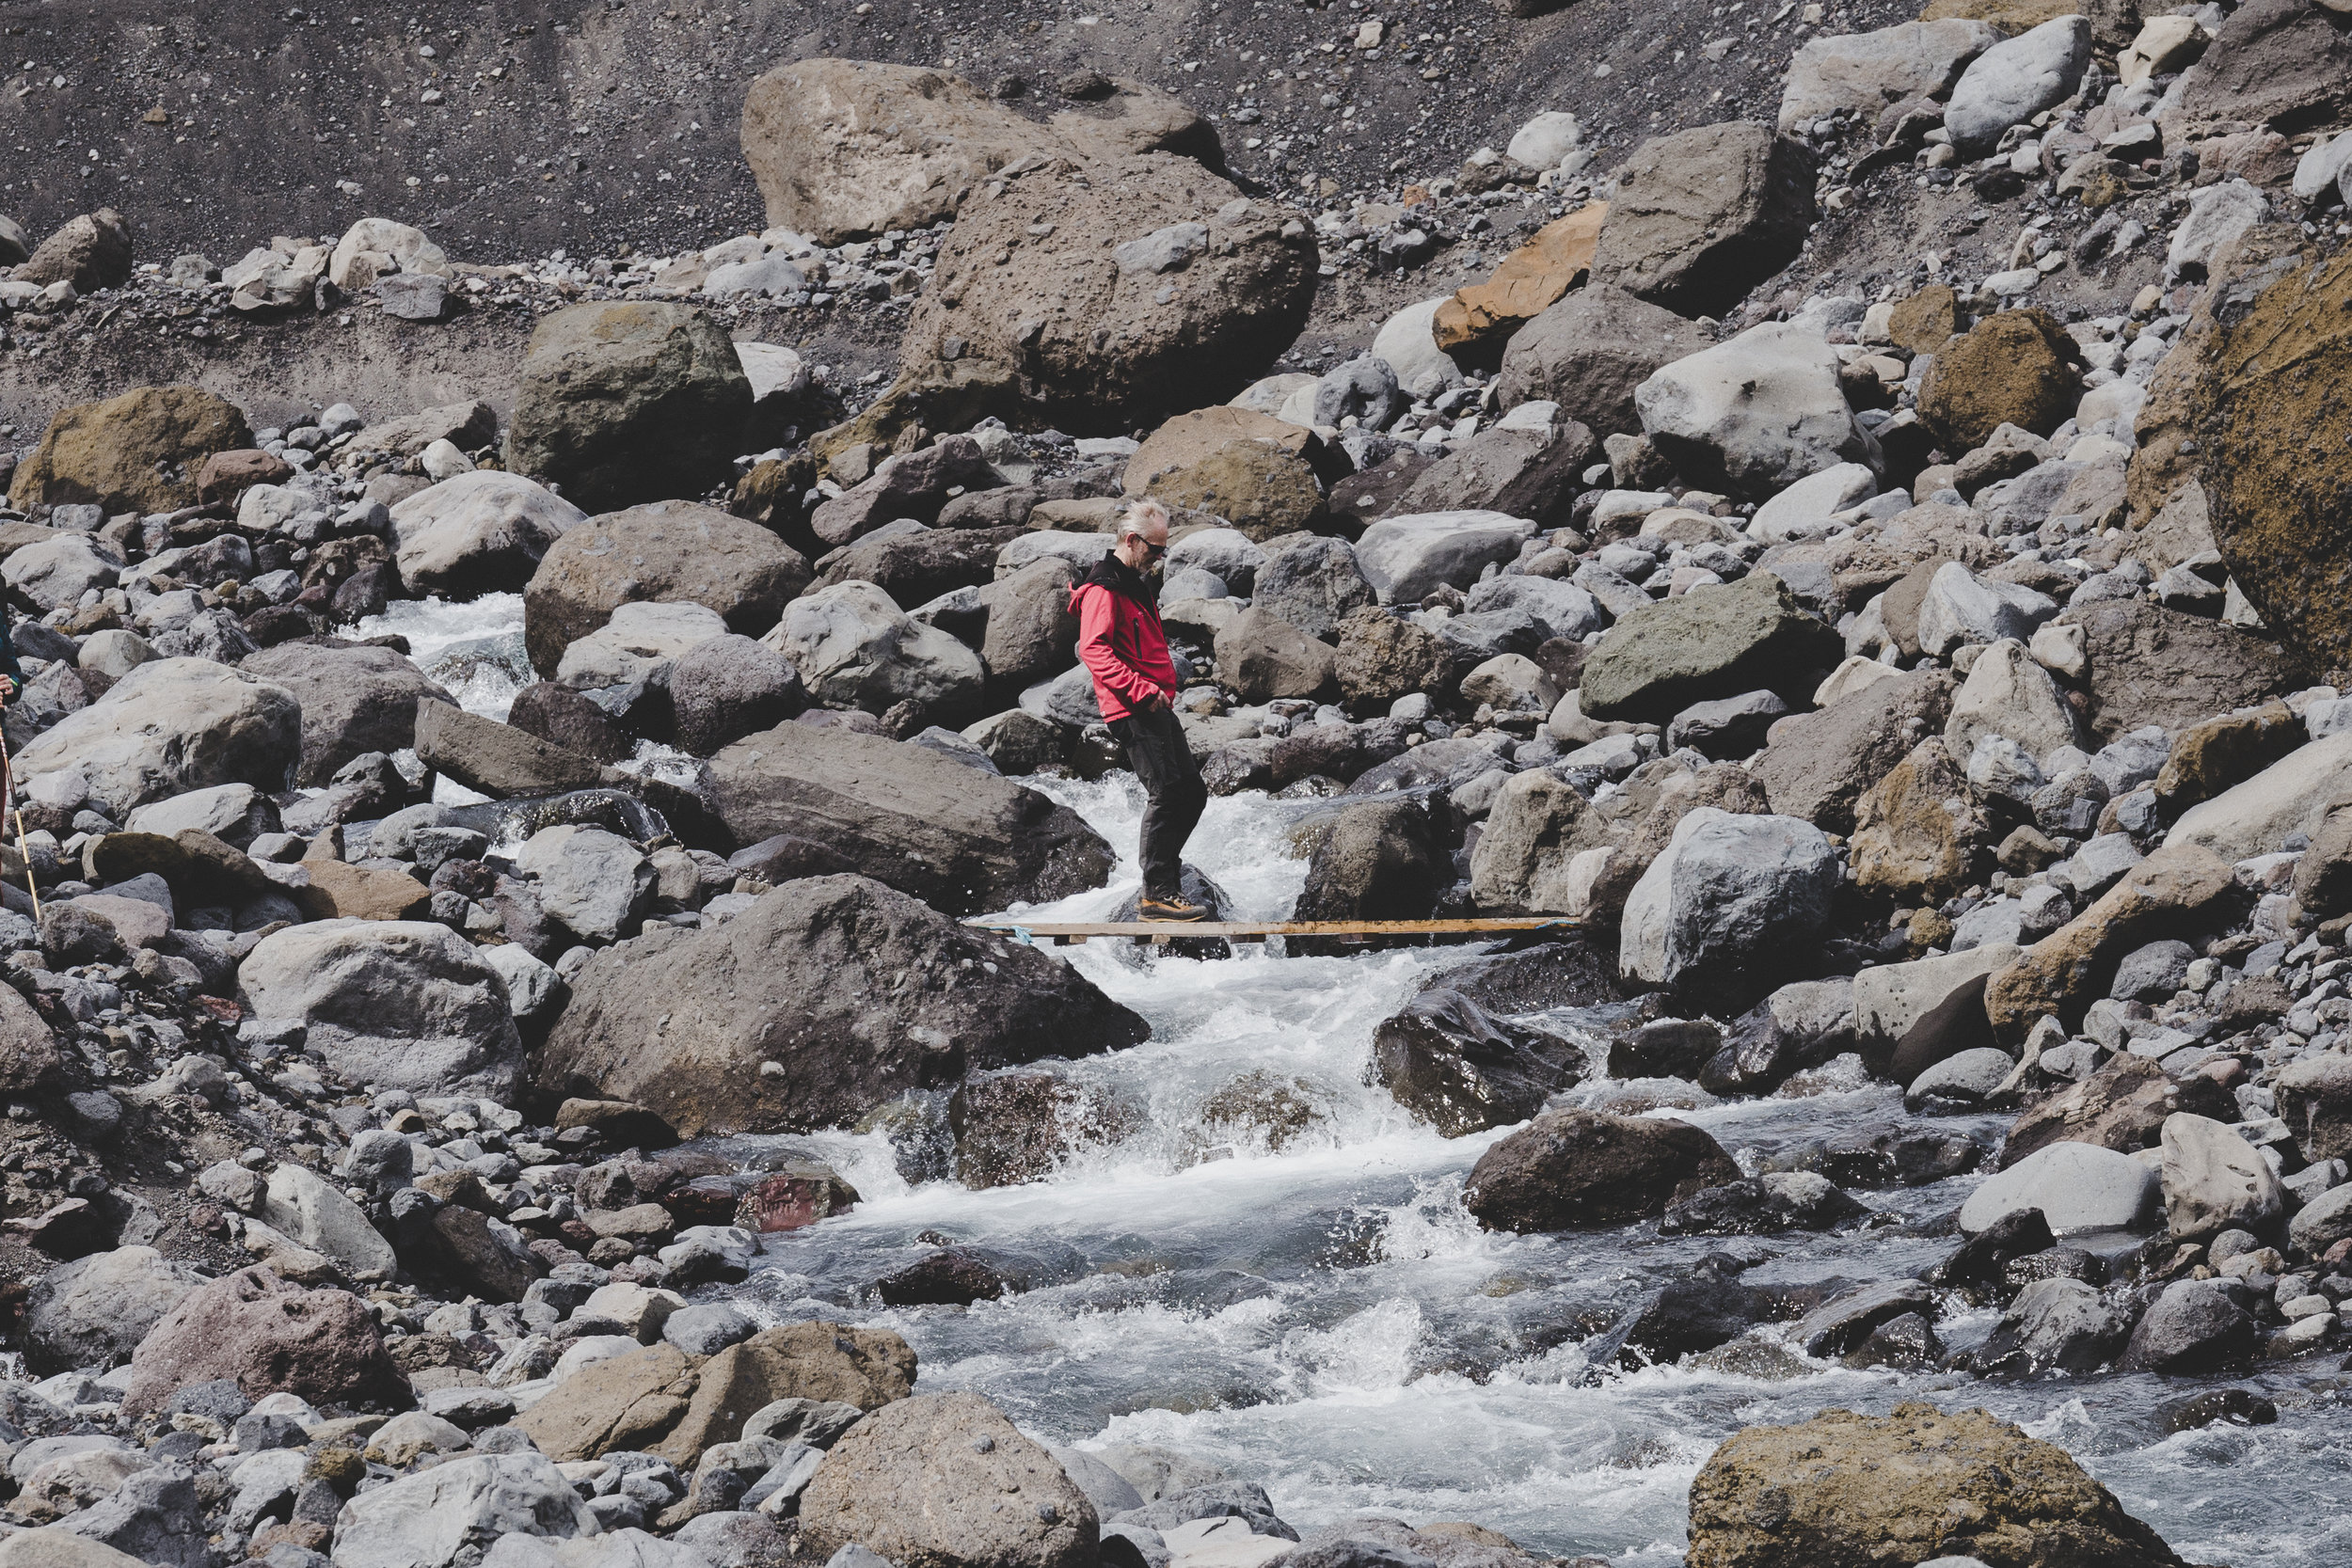 Our guide crossing the river at Gígjökull